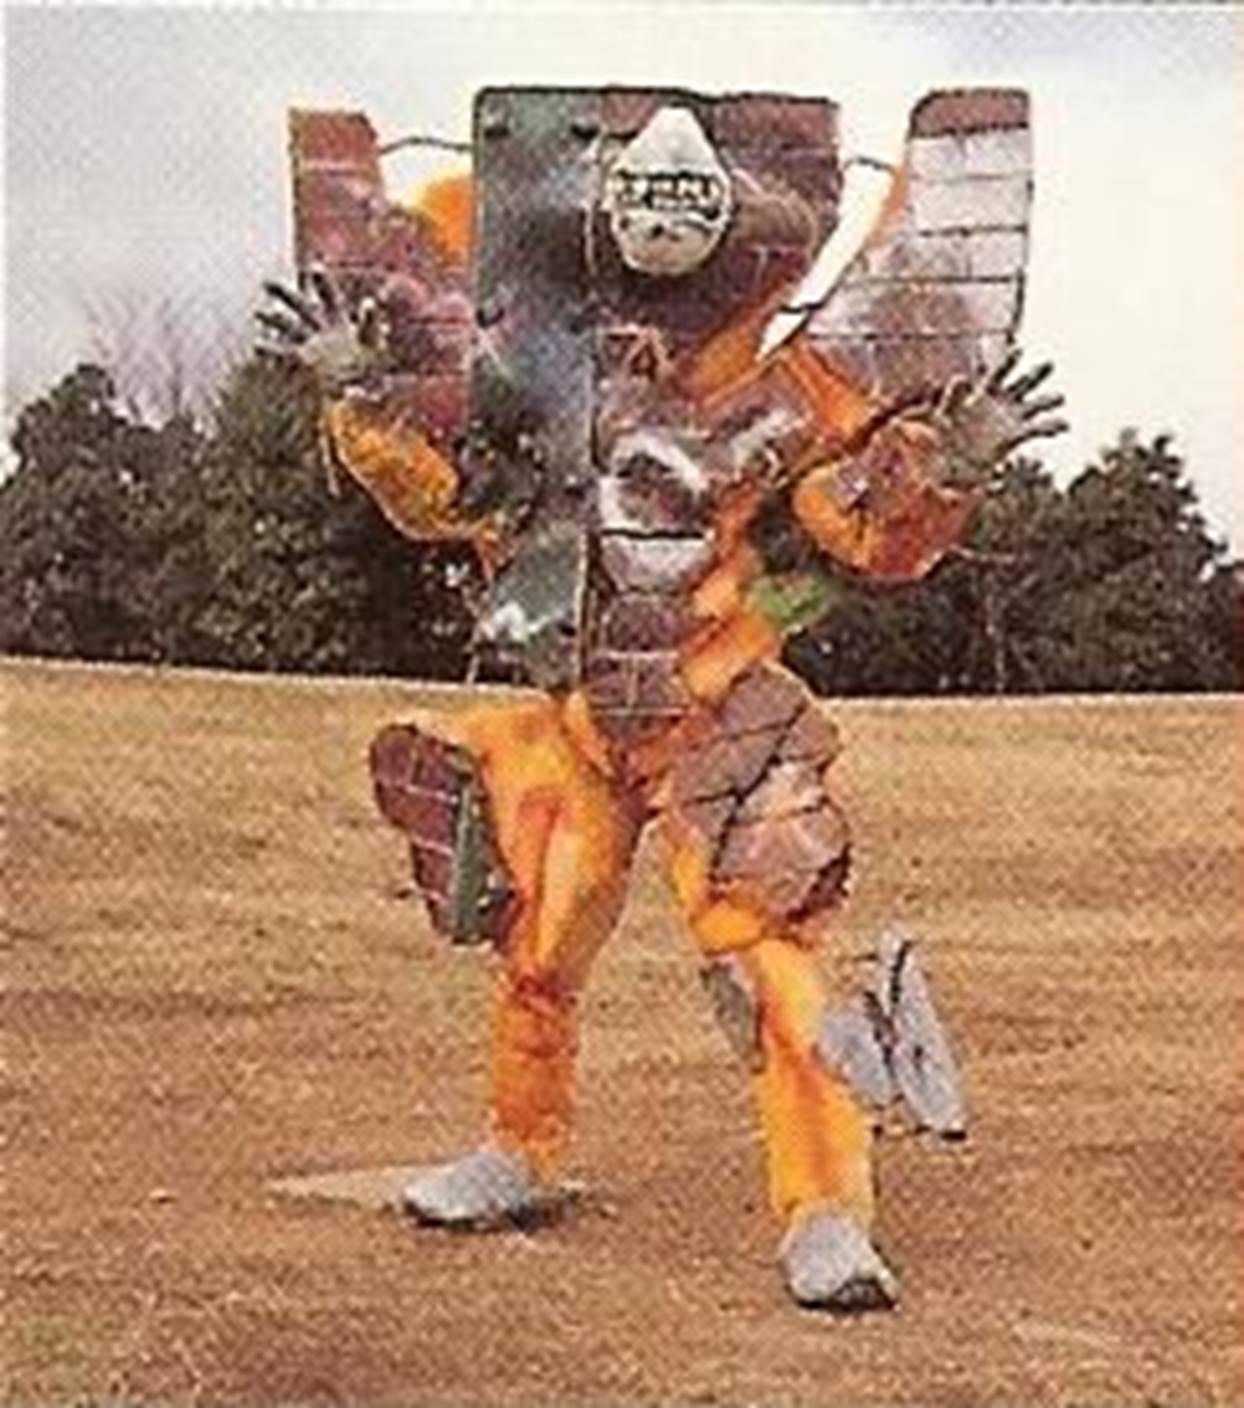 Brick bully power rangers wiki bricks and rita repulsa power rangers brick bully brick bully rangerwiki the super sentai and power rangers mozeypictures Choice Image